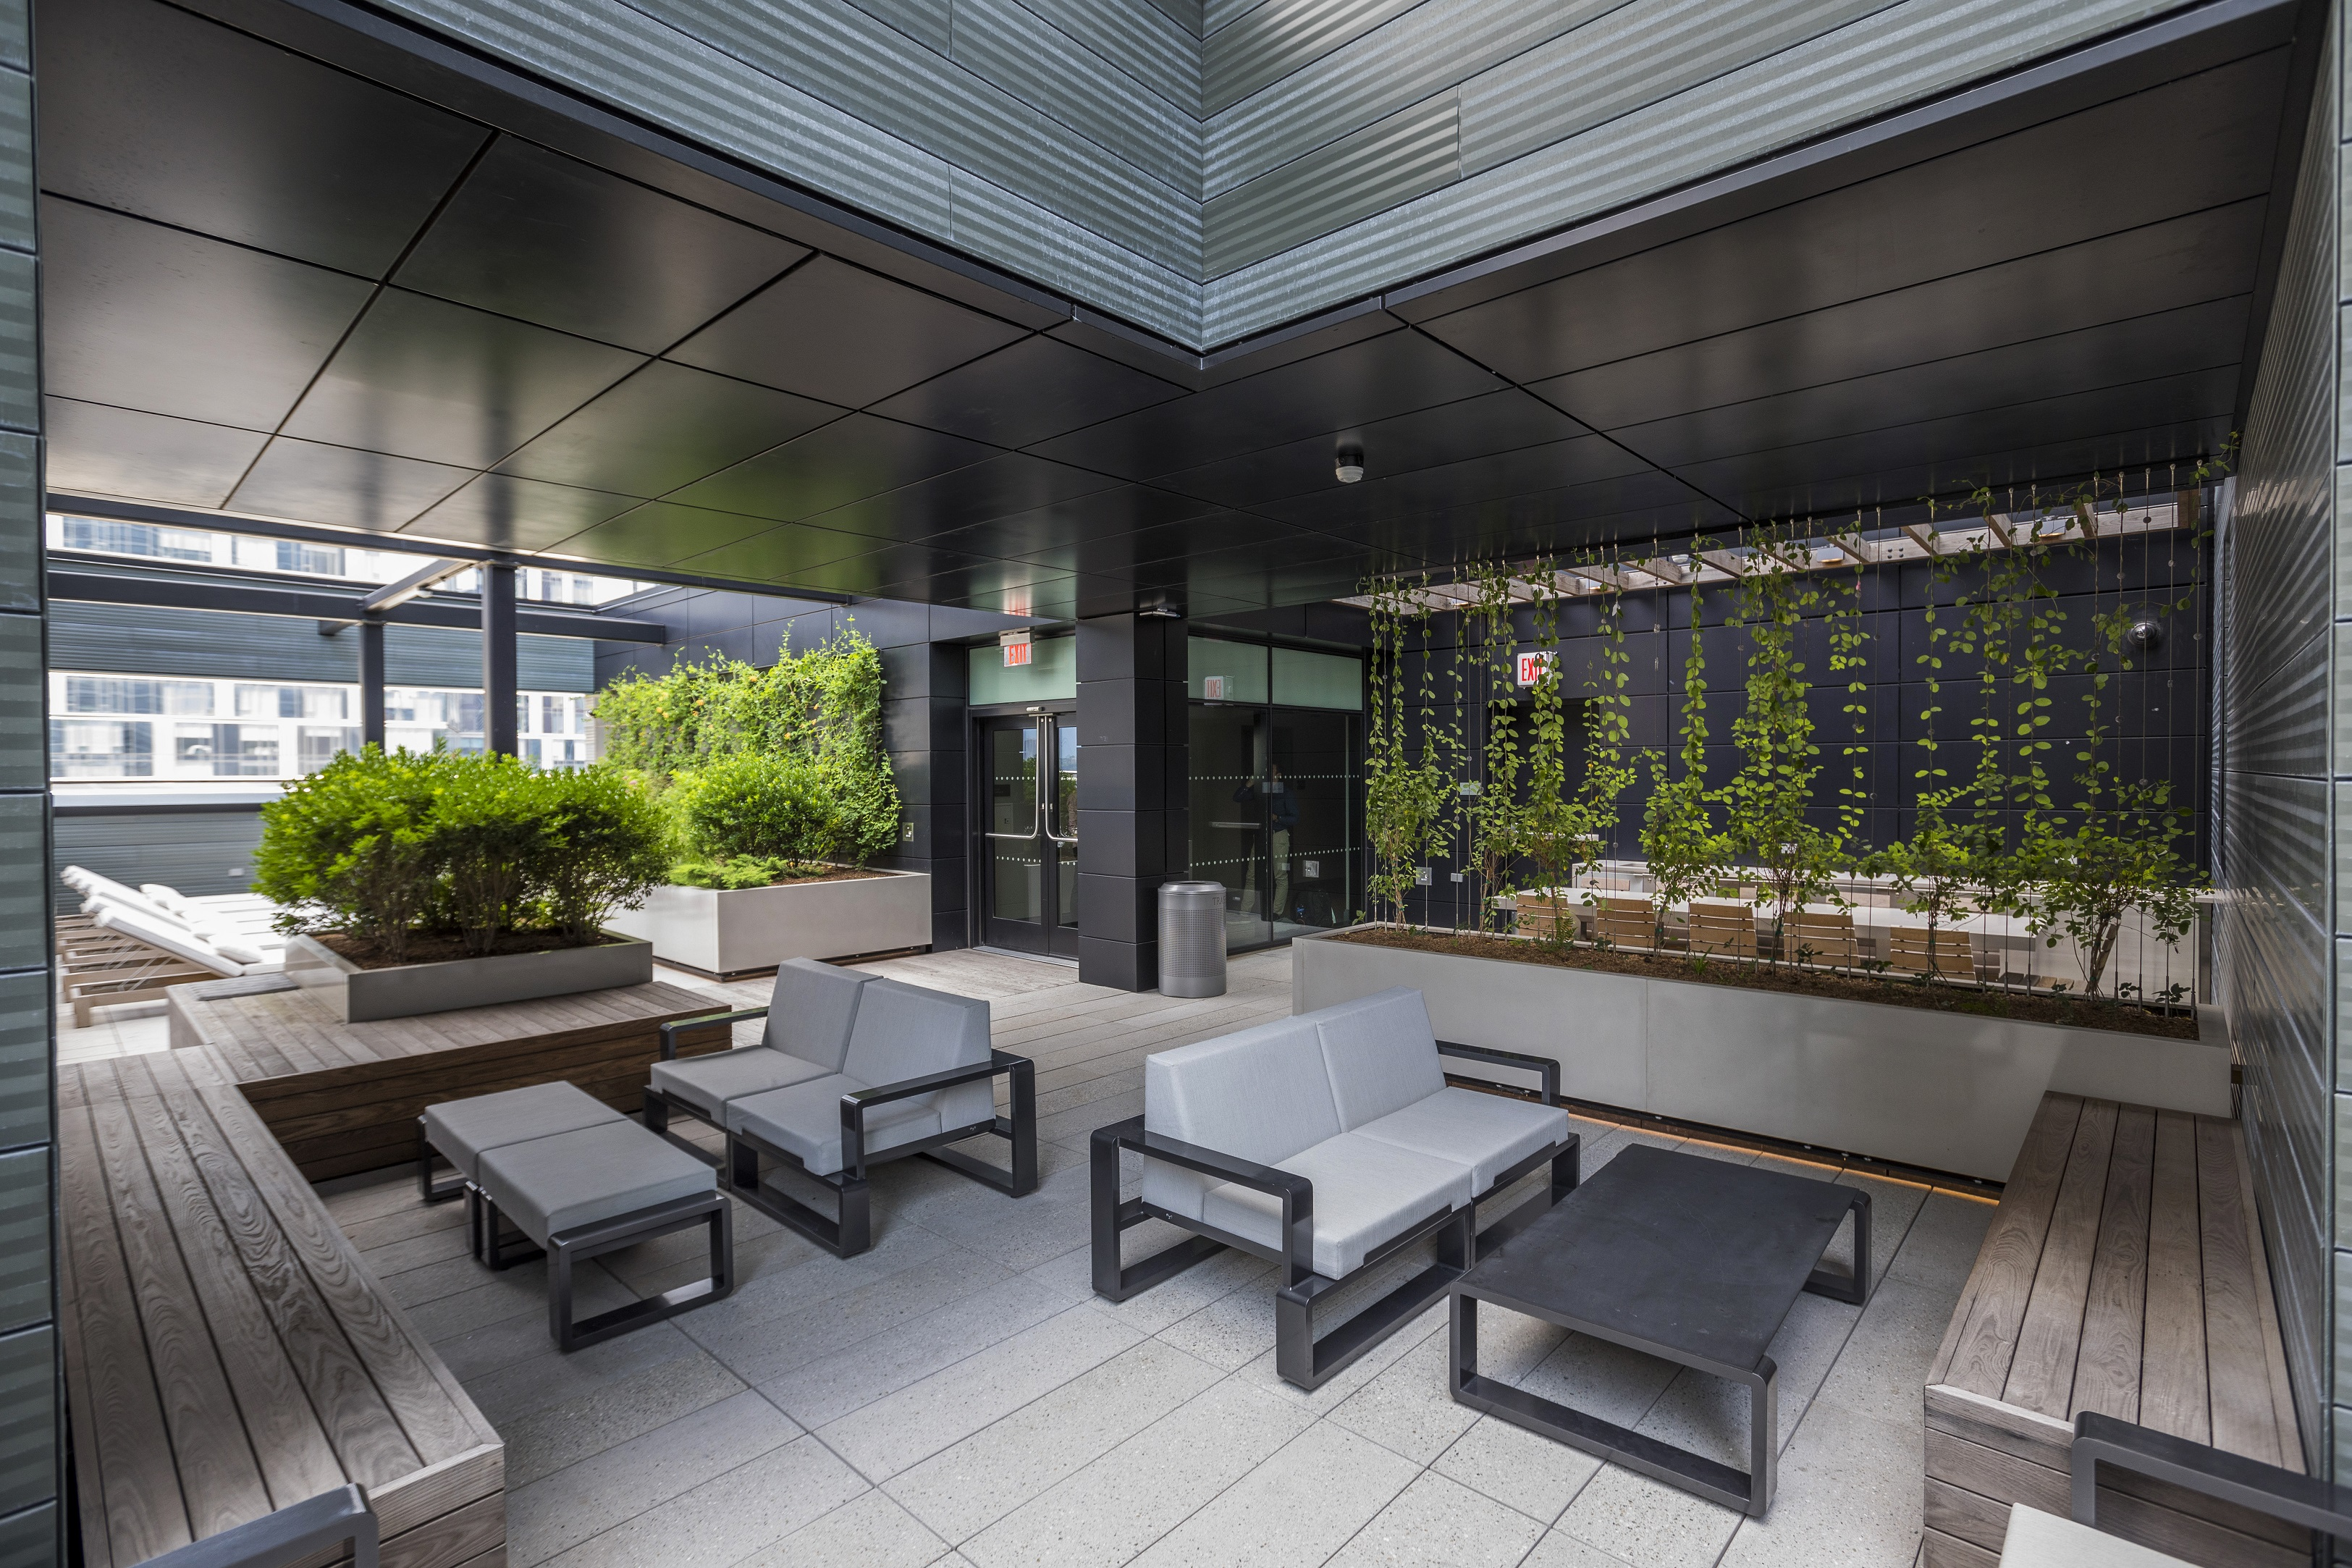 This charming terrace is sure to peak your interest with its pixel plant boxes and climbing vines.